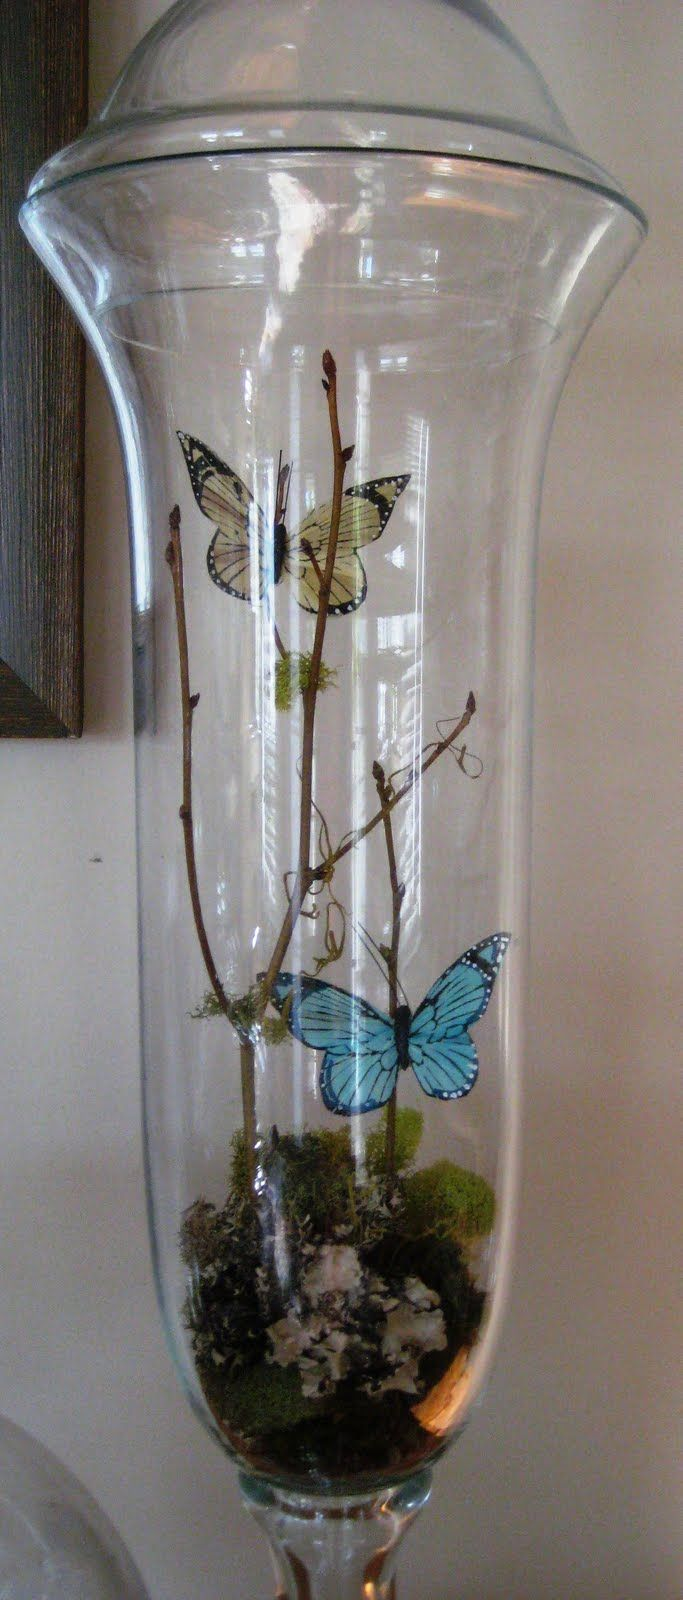 Spring apothecary jar @Amy Lyons Lyons Lyons Woolery I have some moss you can borrow. You could even make the butterflies out of cute scrapbook paper and glue them to some found twigs...